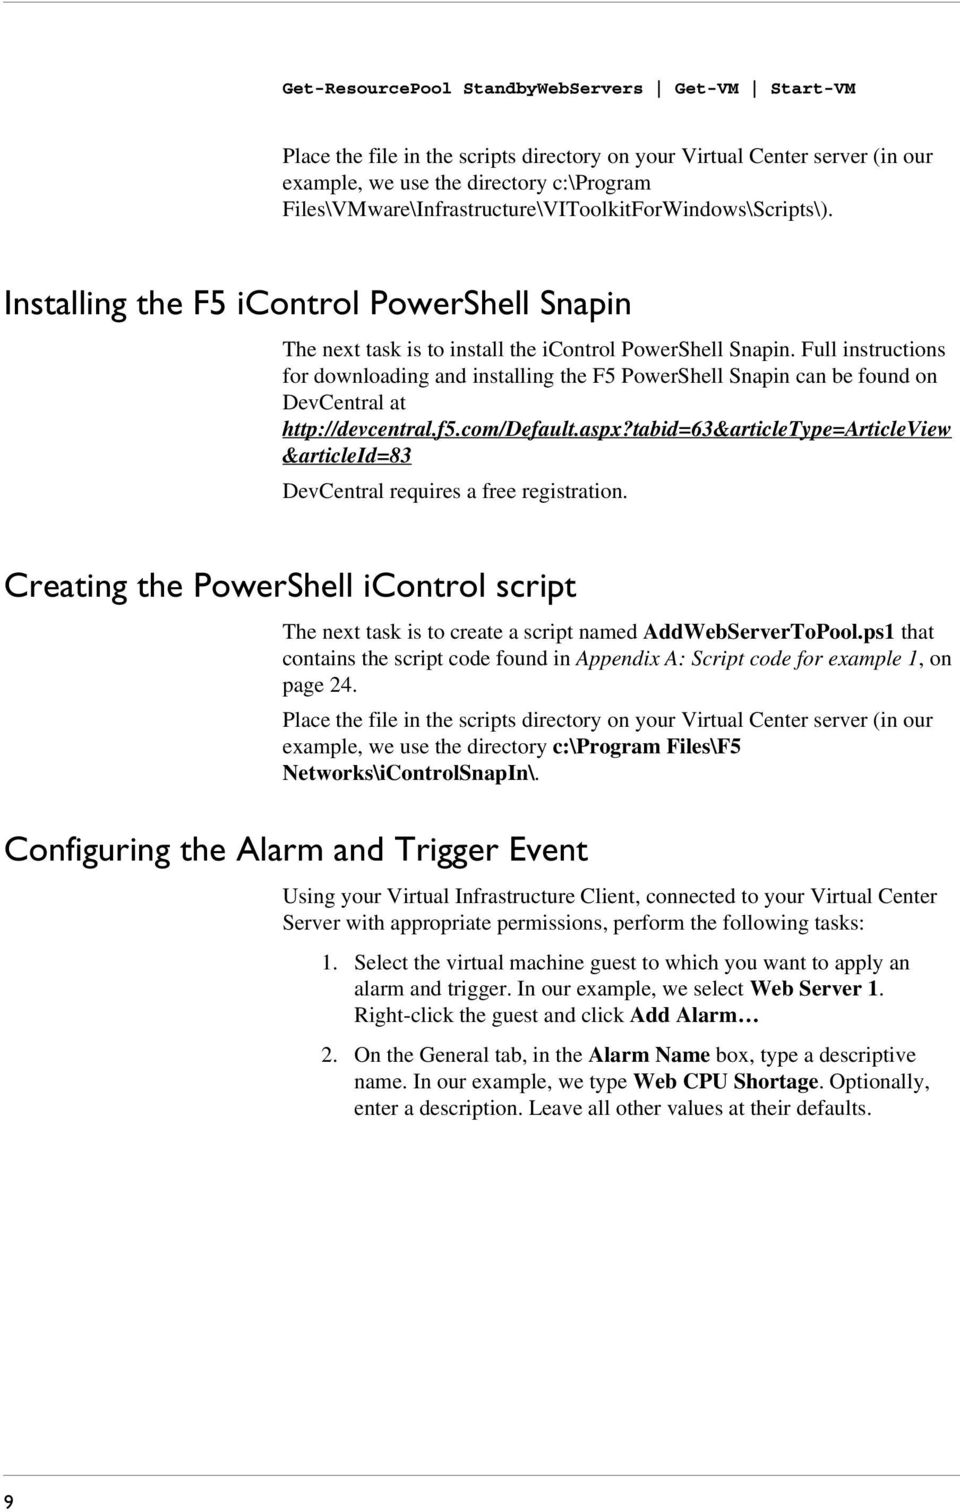 Full instructions for downloading and installing the F5 PowerShell Snapin can be found on DevCentral at http://devcentral.f5.com/default.aspx?